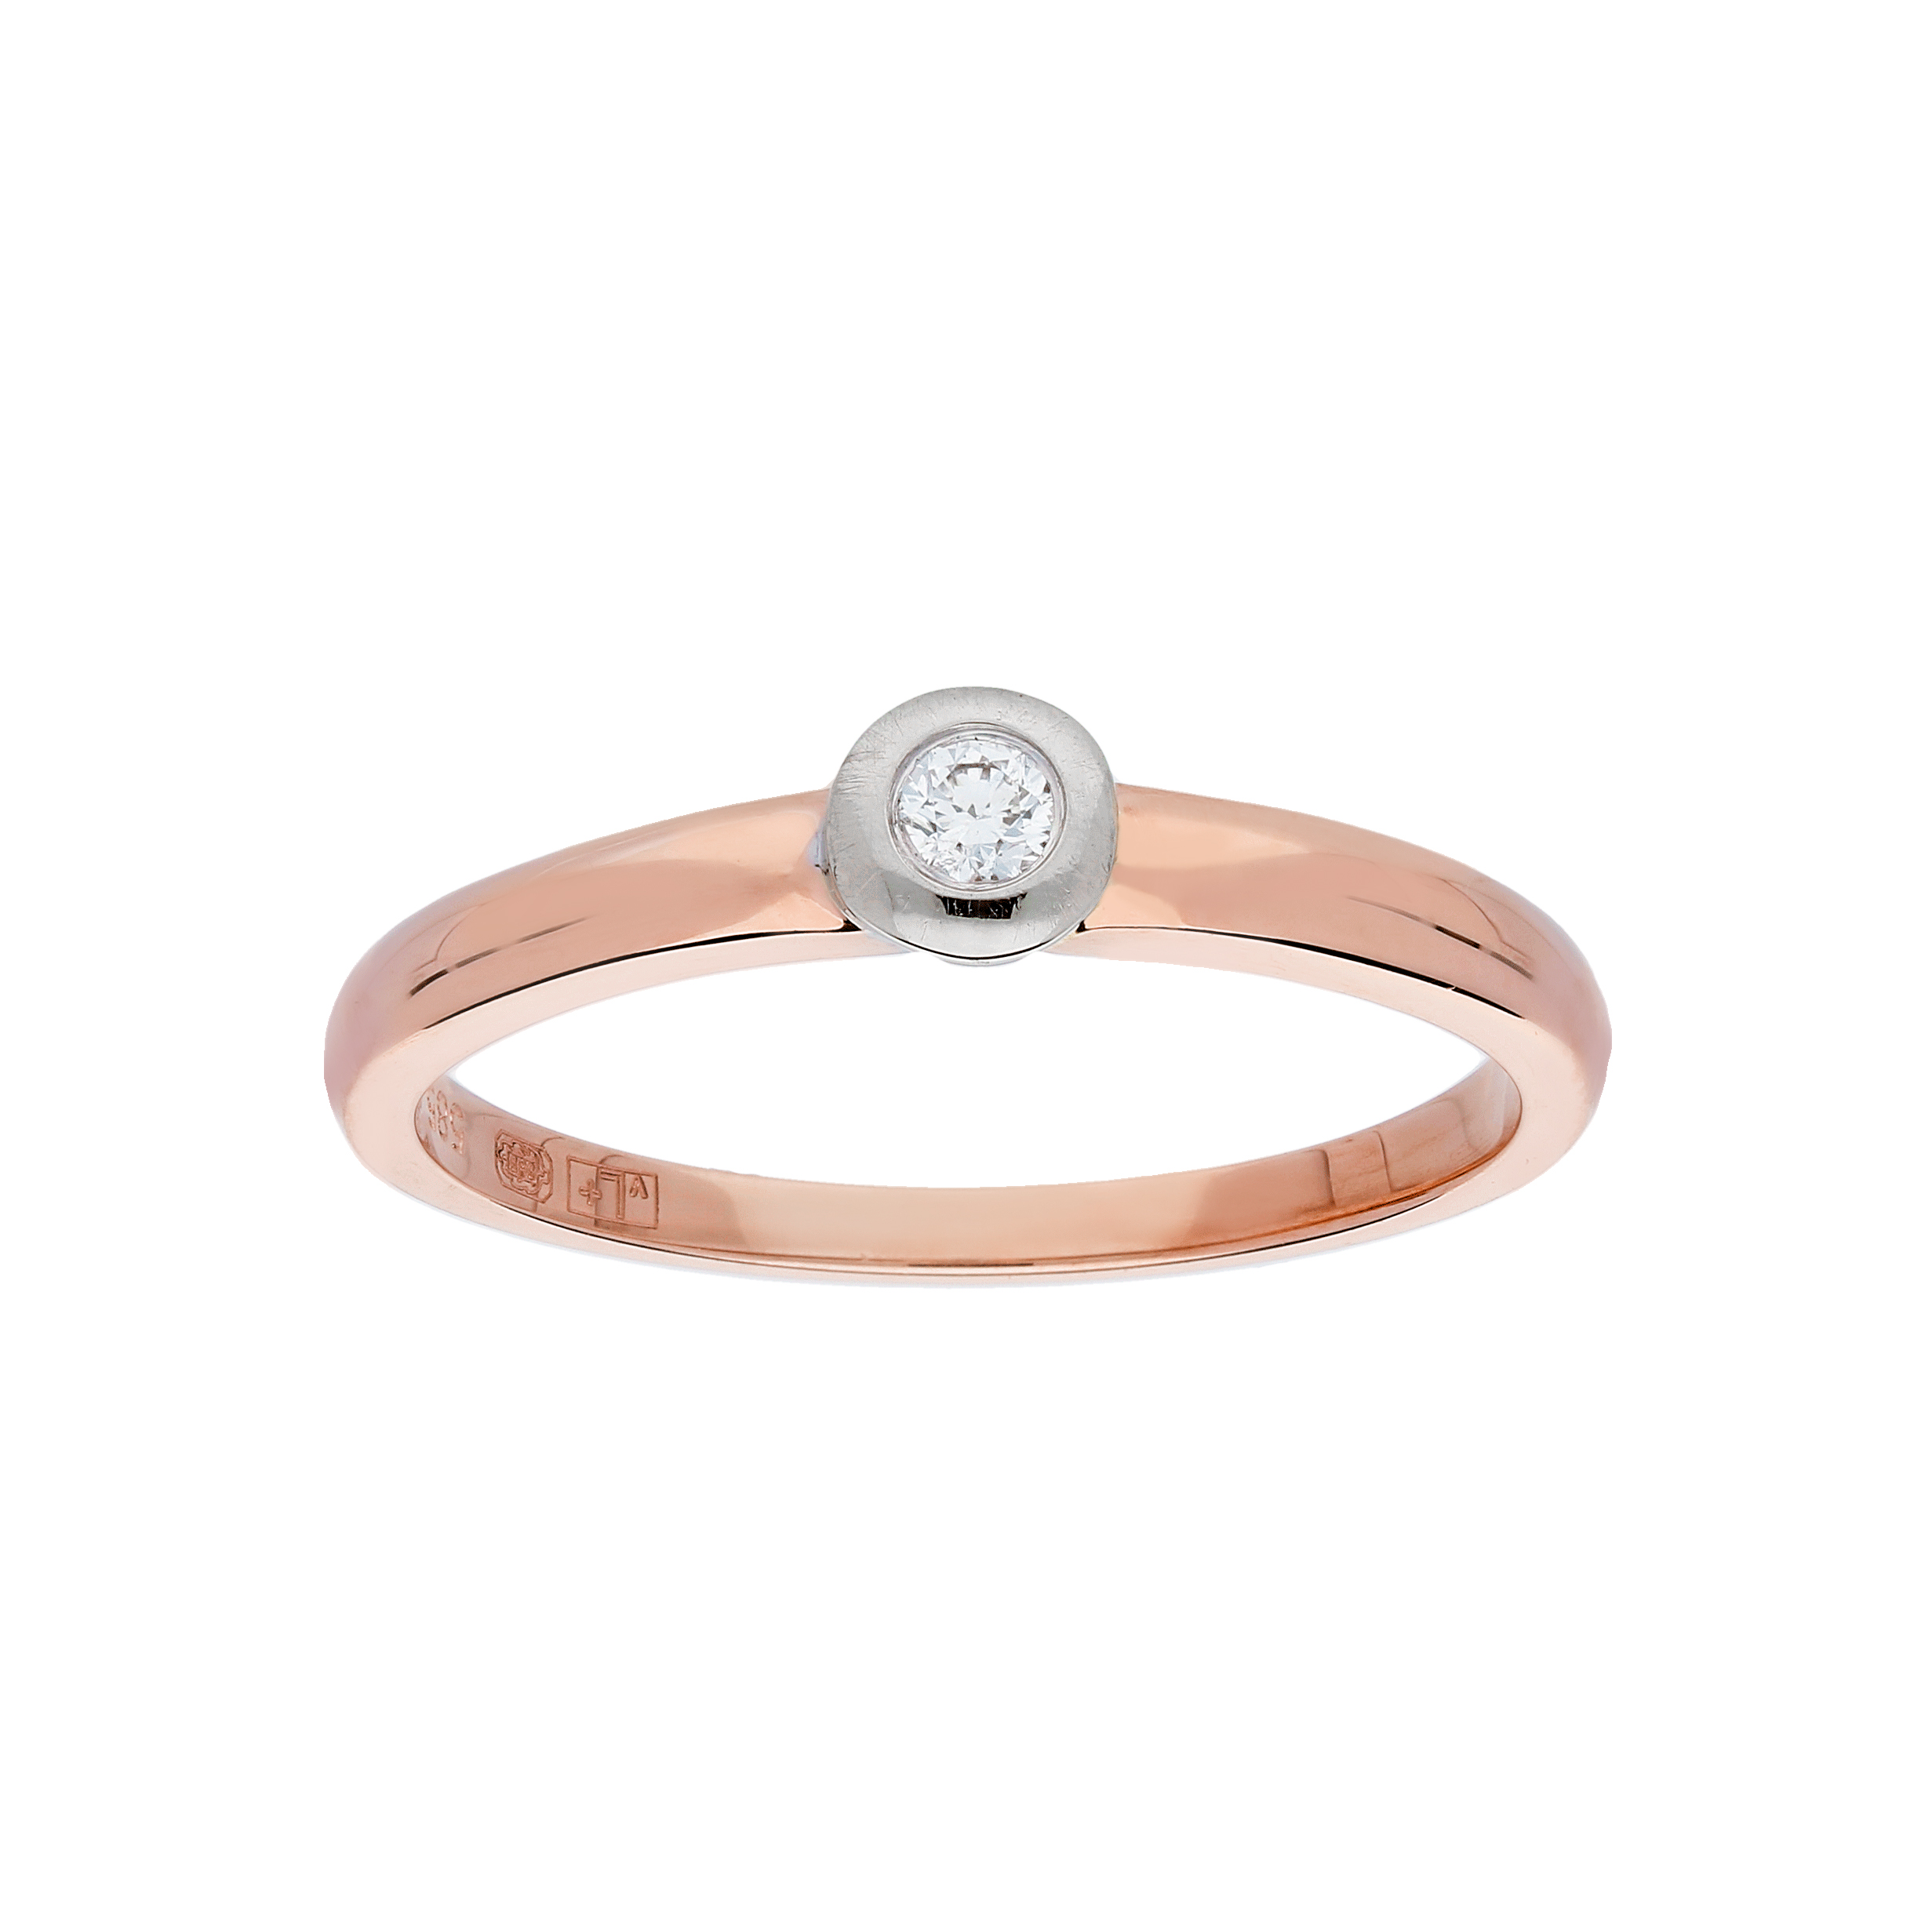 Glow Gouden Ring Bicolor Mat Glanzend Diamant 1 0.05ct G si 214.5208.52